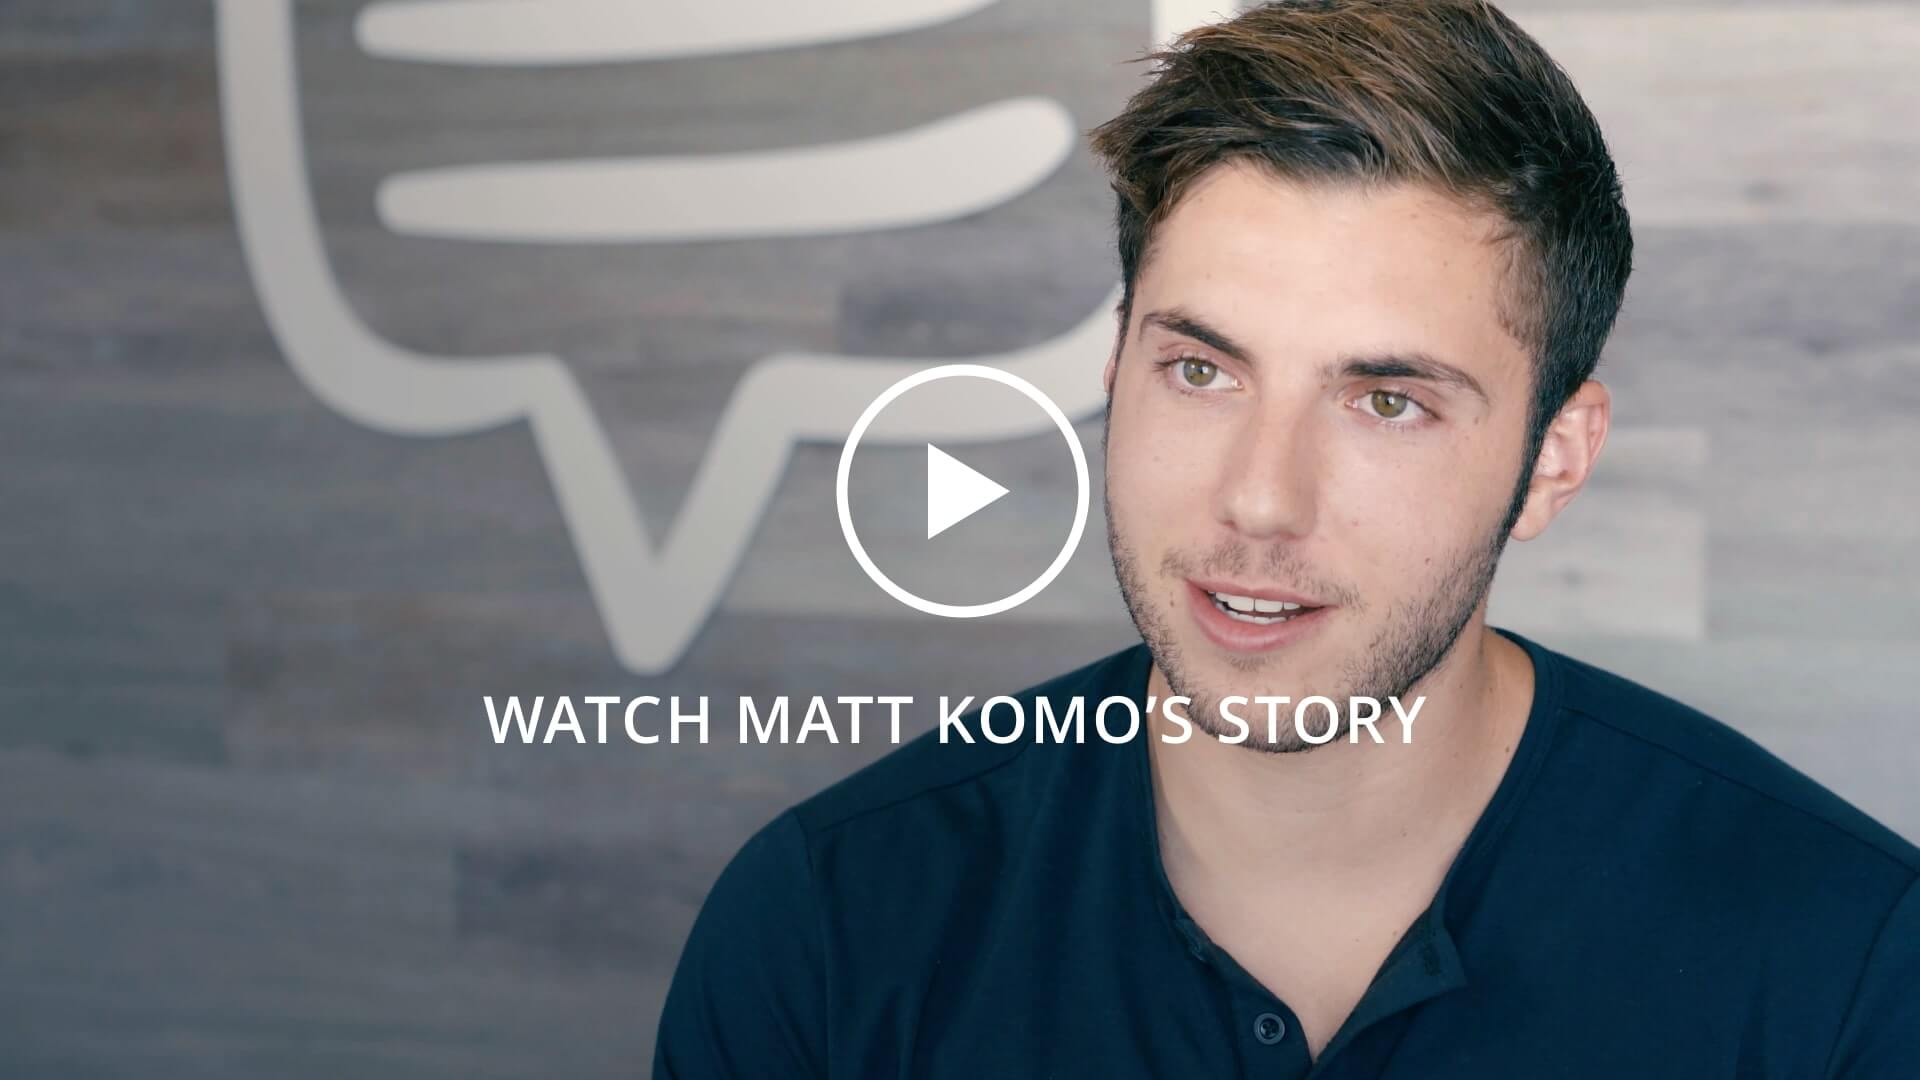 Matt Komo Feature - 2-min